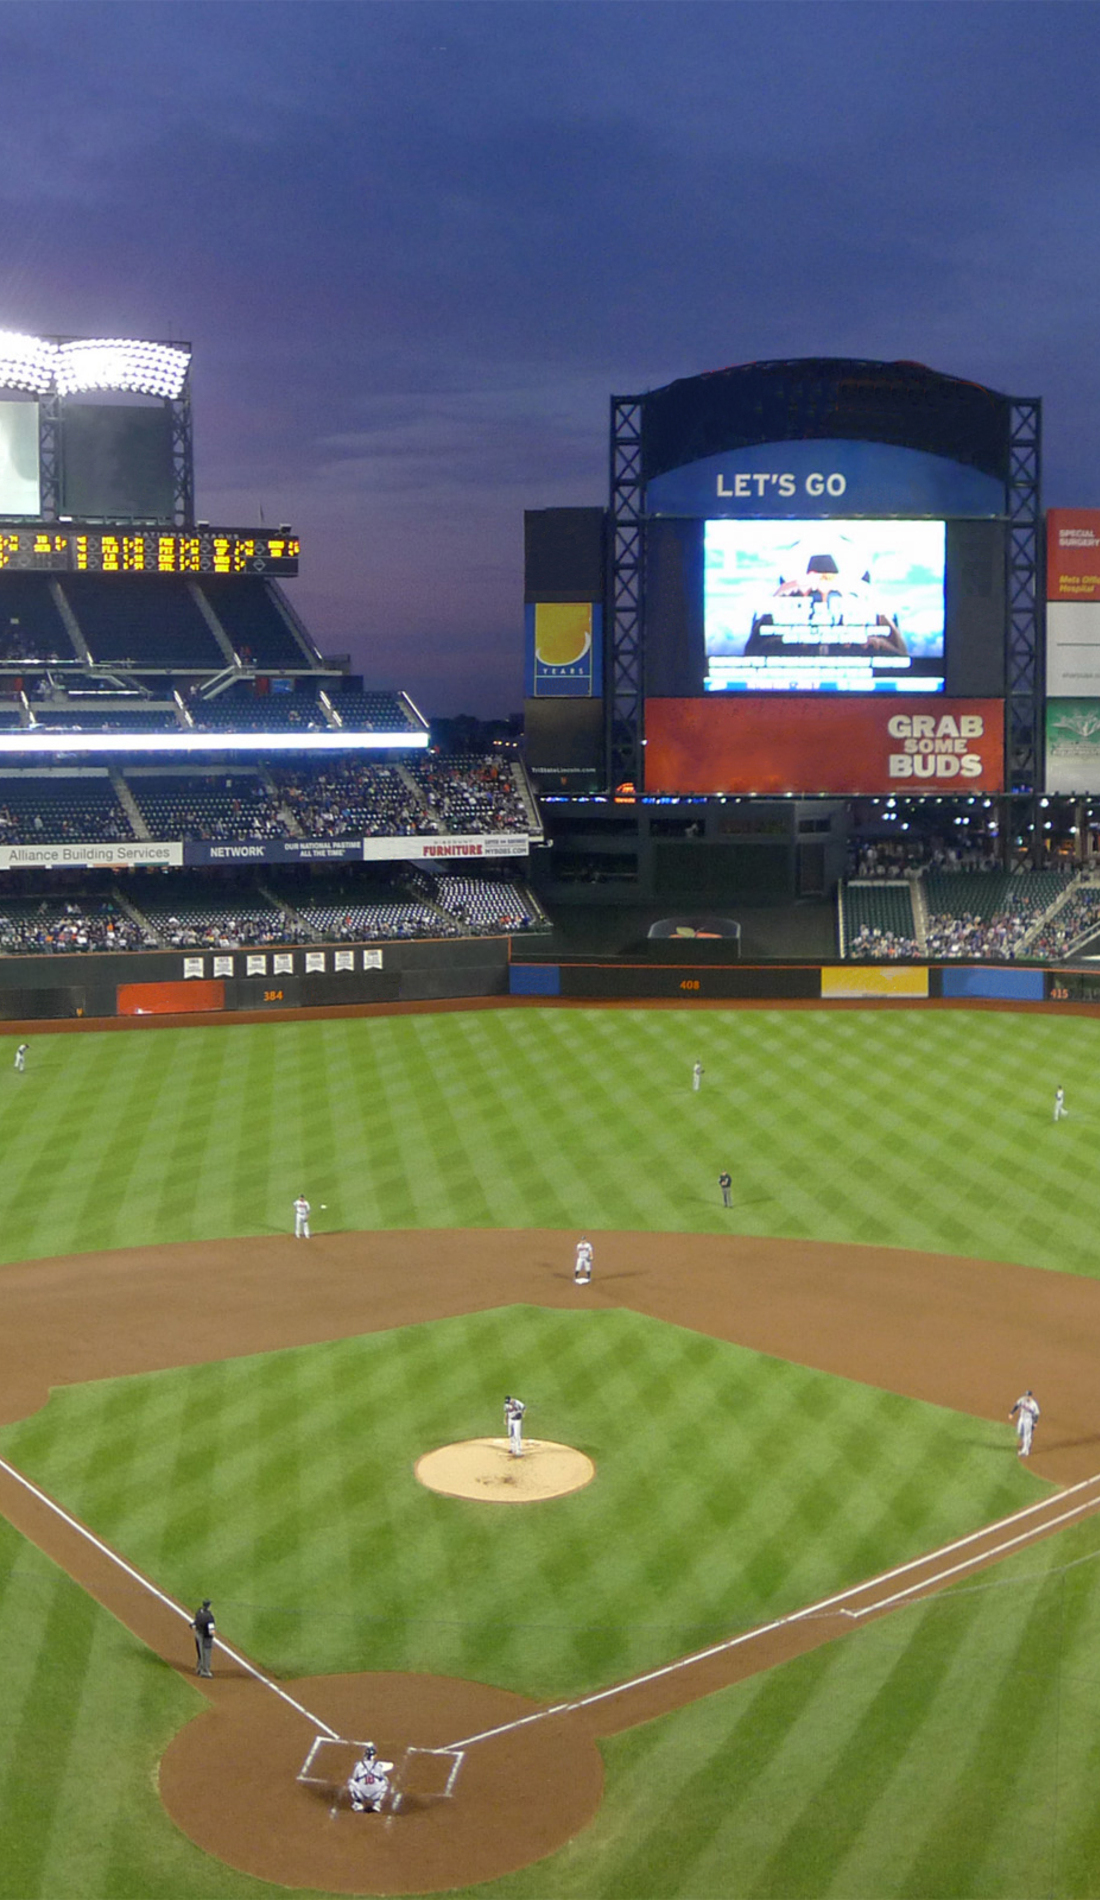 A New York Mets live event